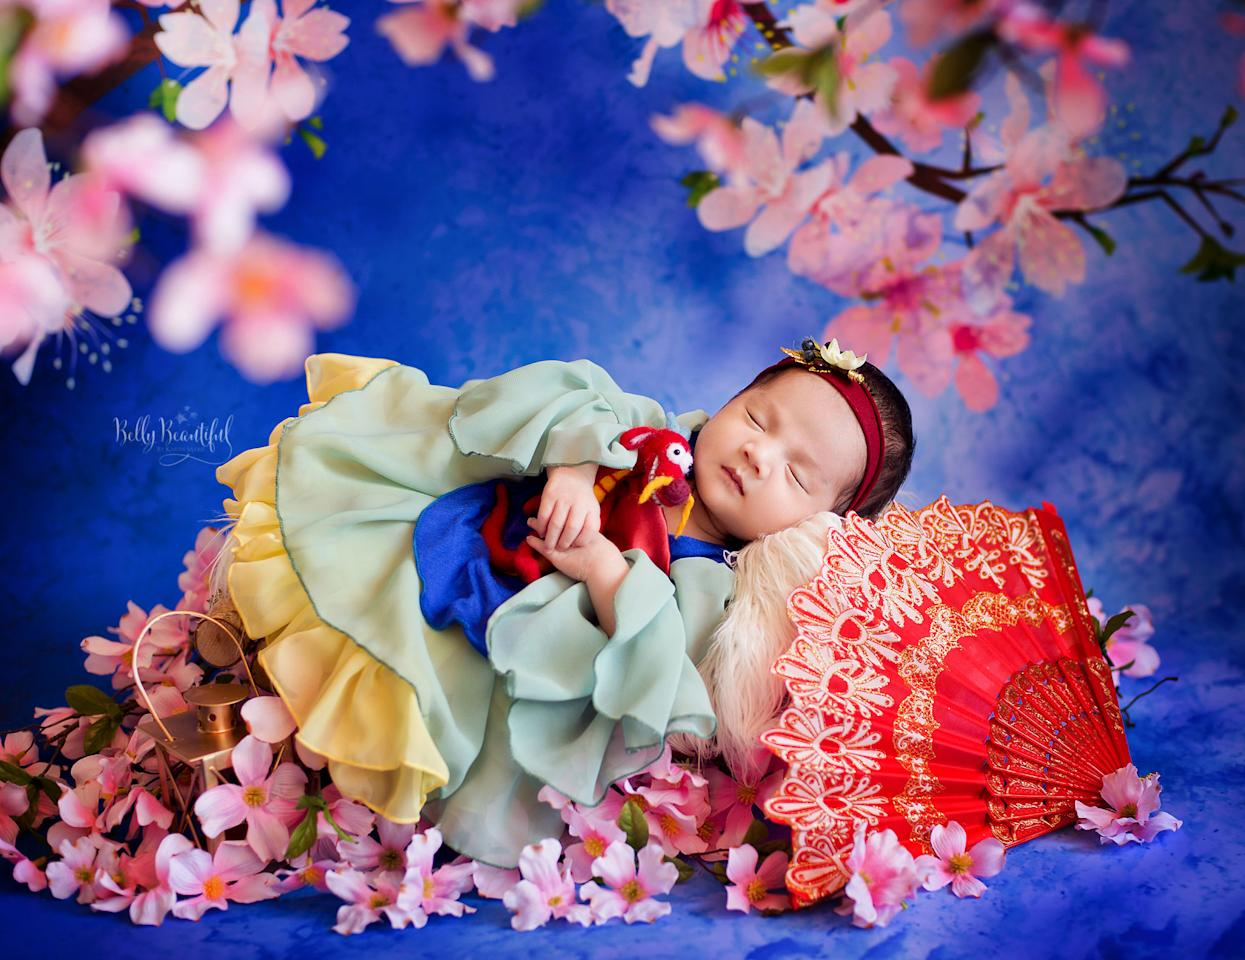 This Photographer Took Photos Of Babies Dress As Itty Bitty Disney Princesses And We Are Crying